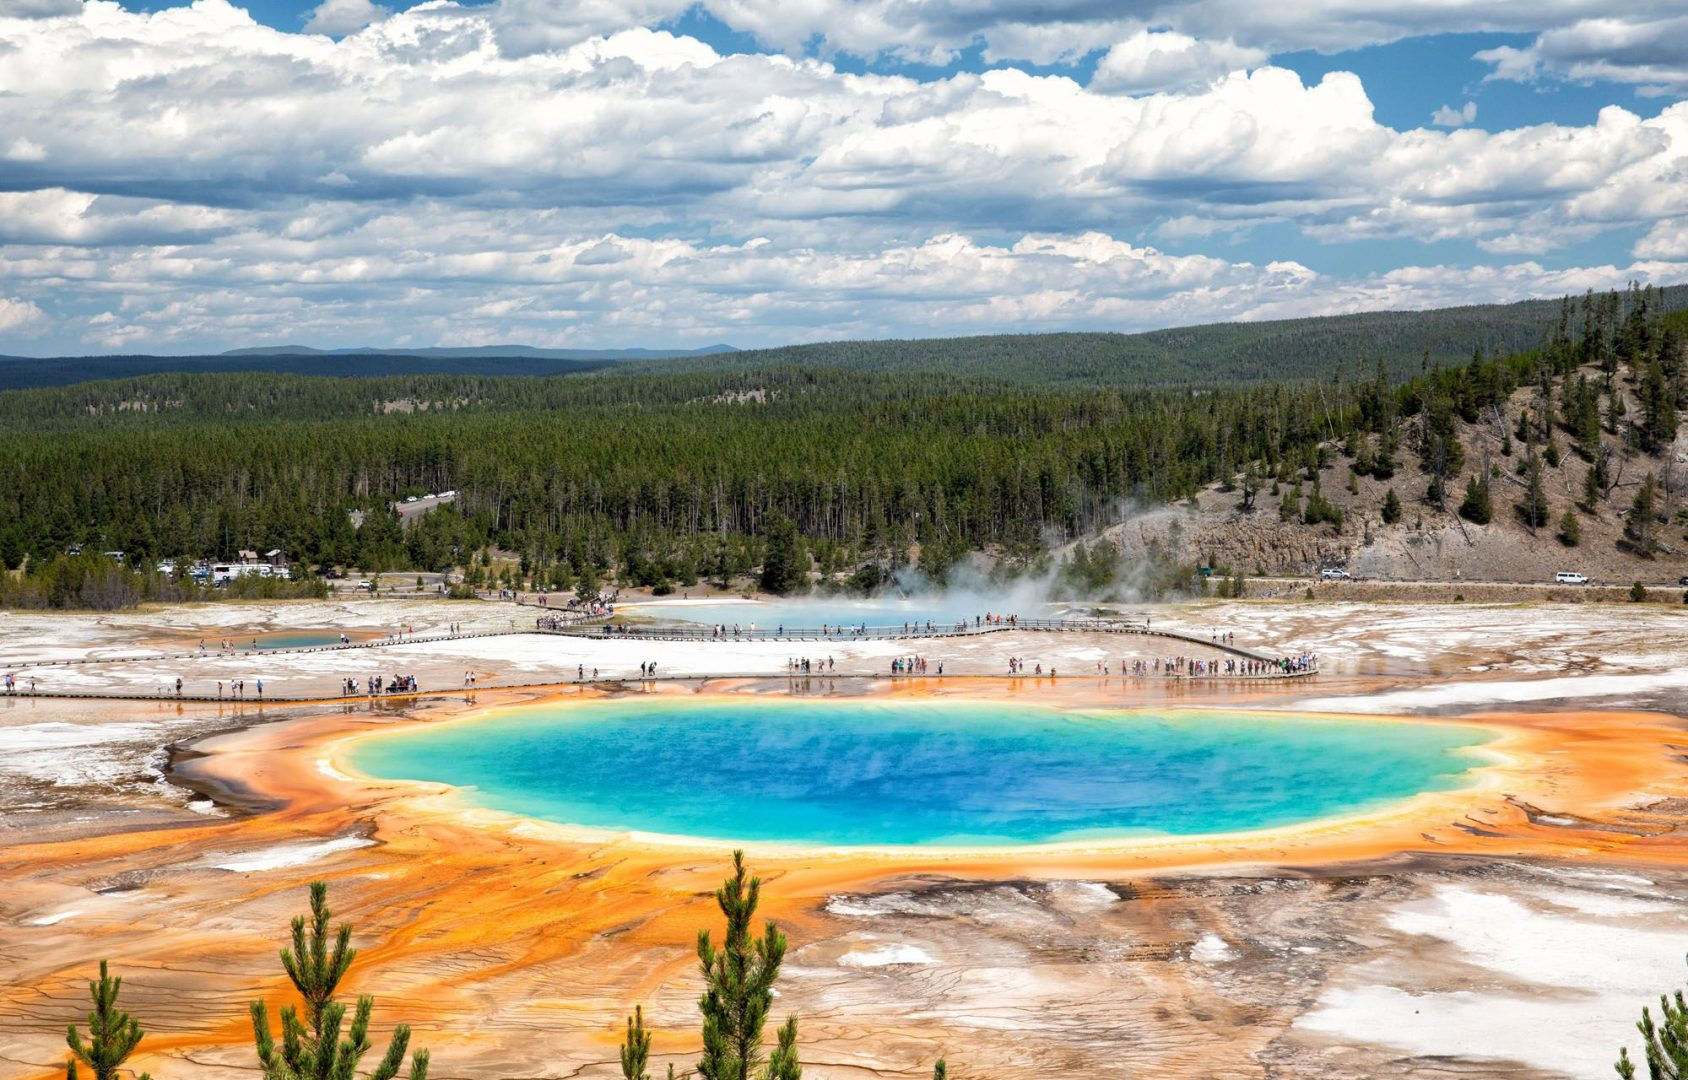 Grand Prismatic Spring, Yellowstone, U.S.A.